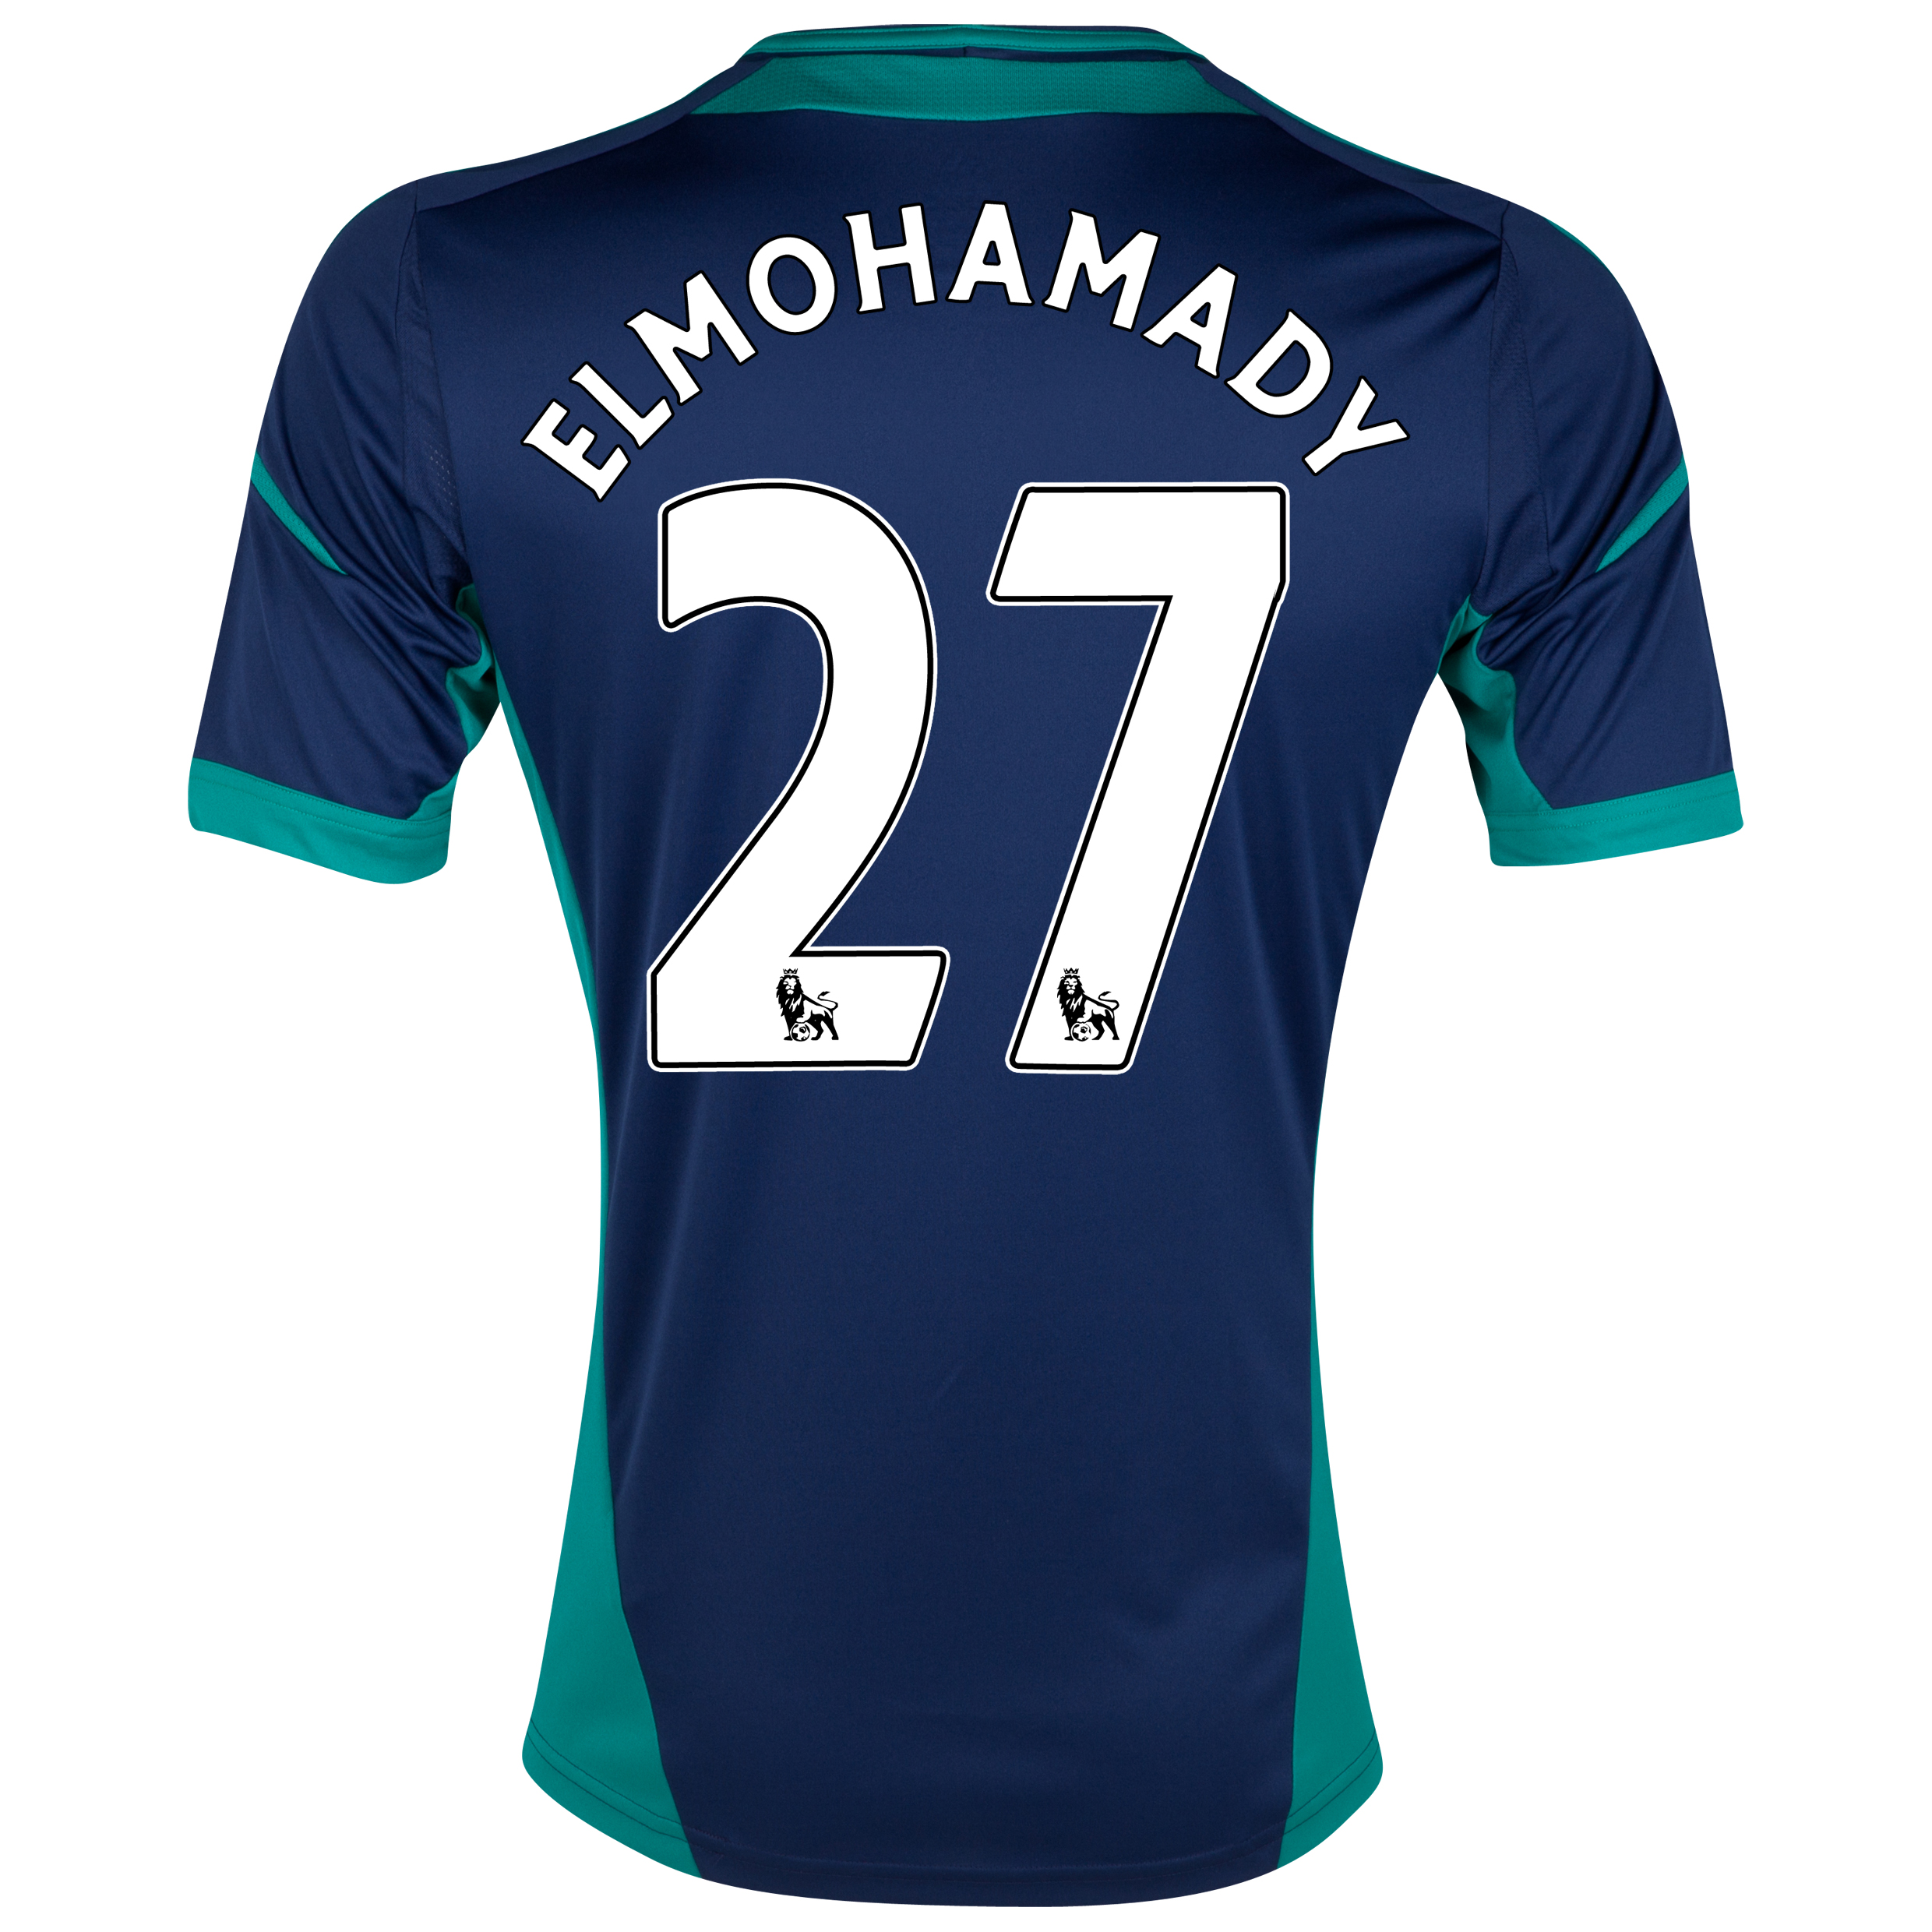 Sunderland Away Shirt 2012/13 with Elmohamady 27 printing